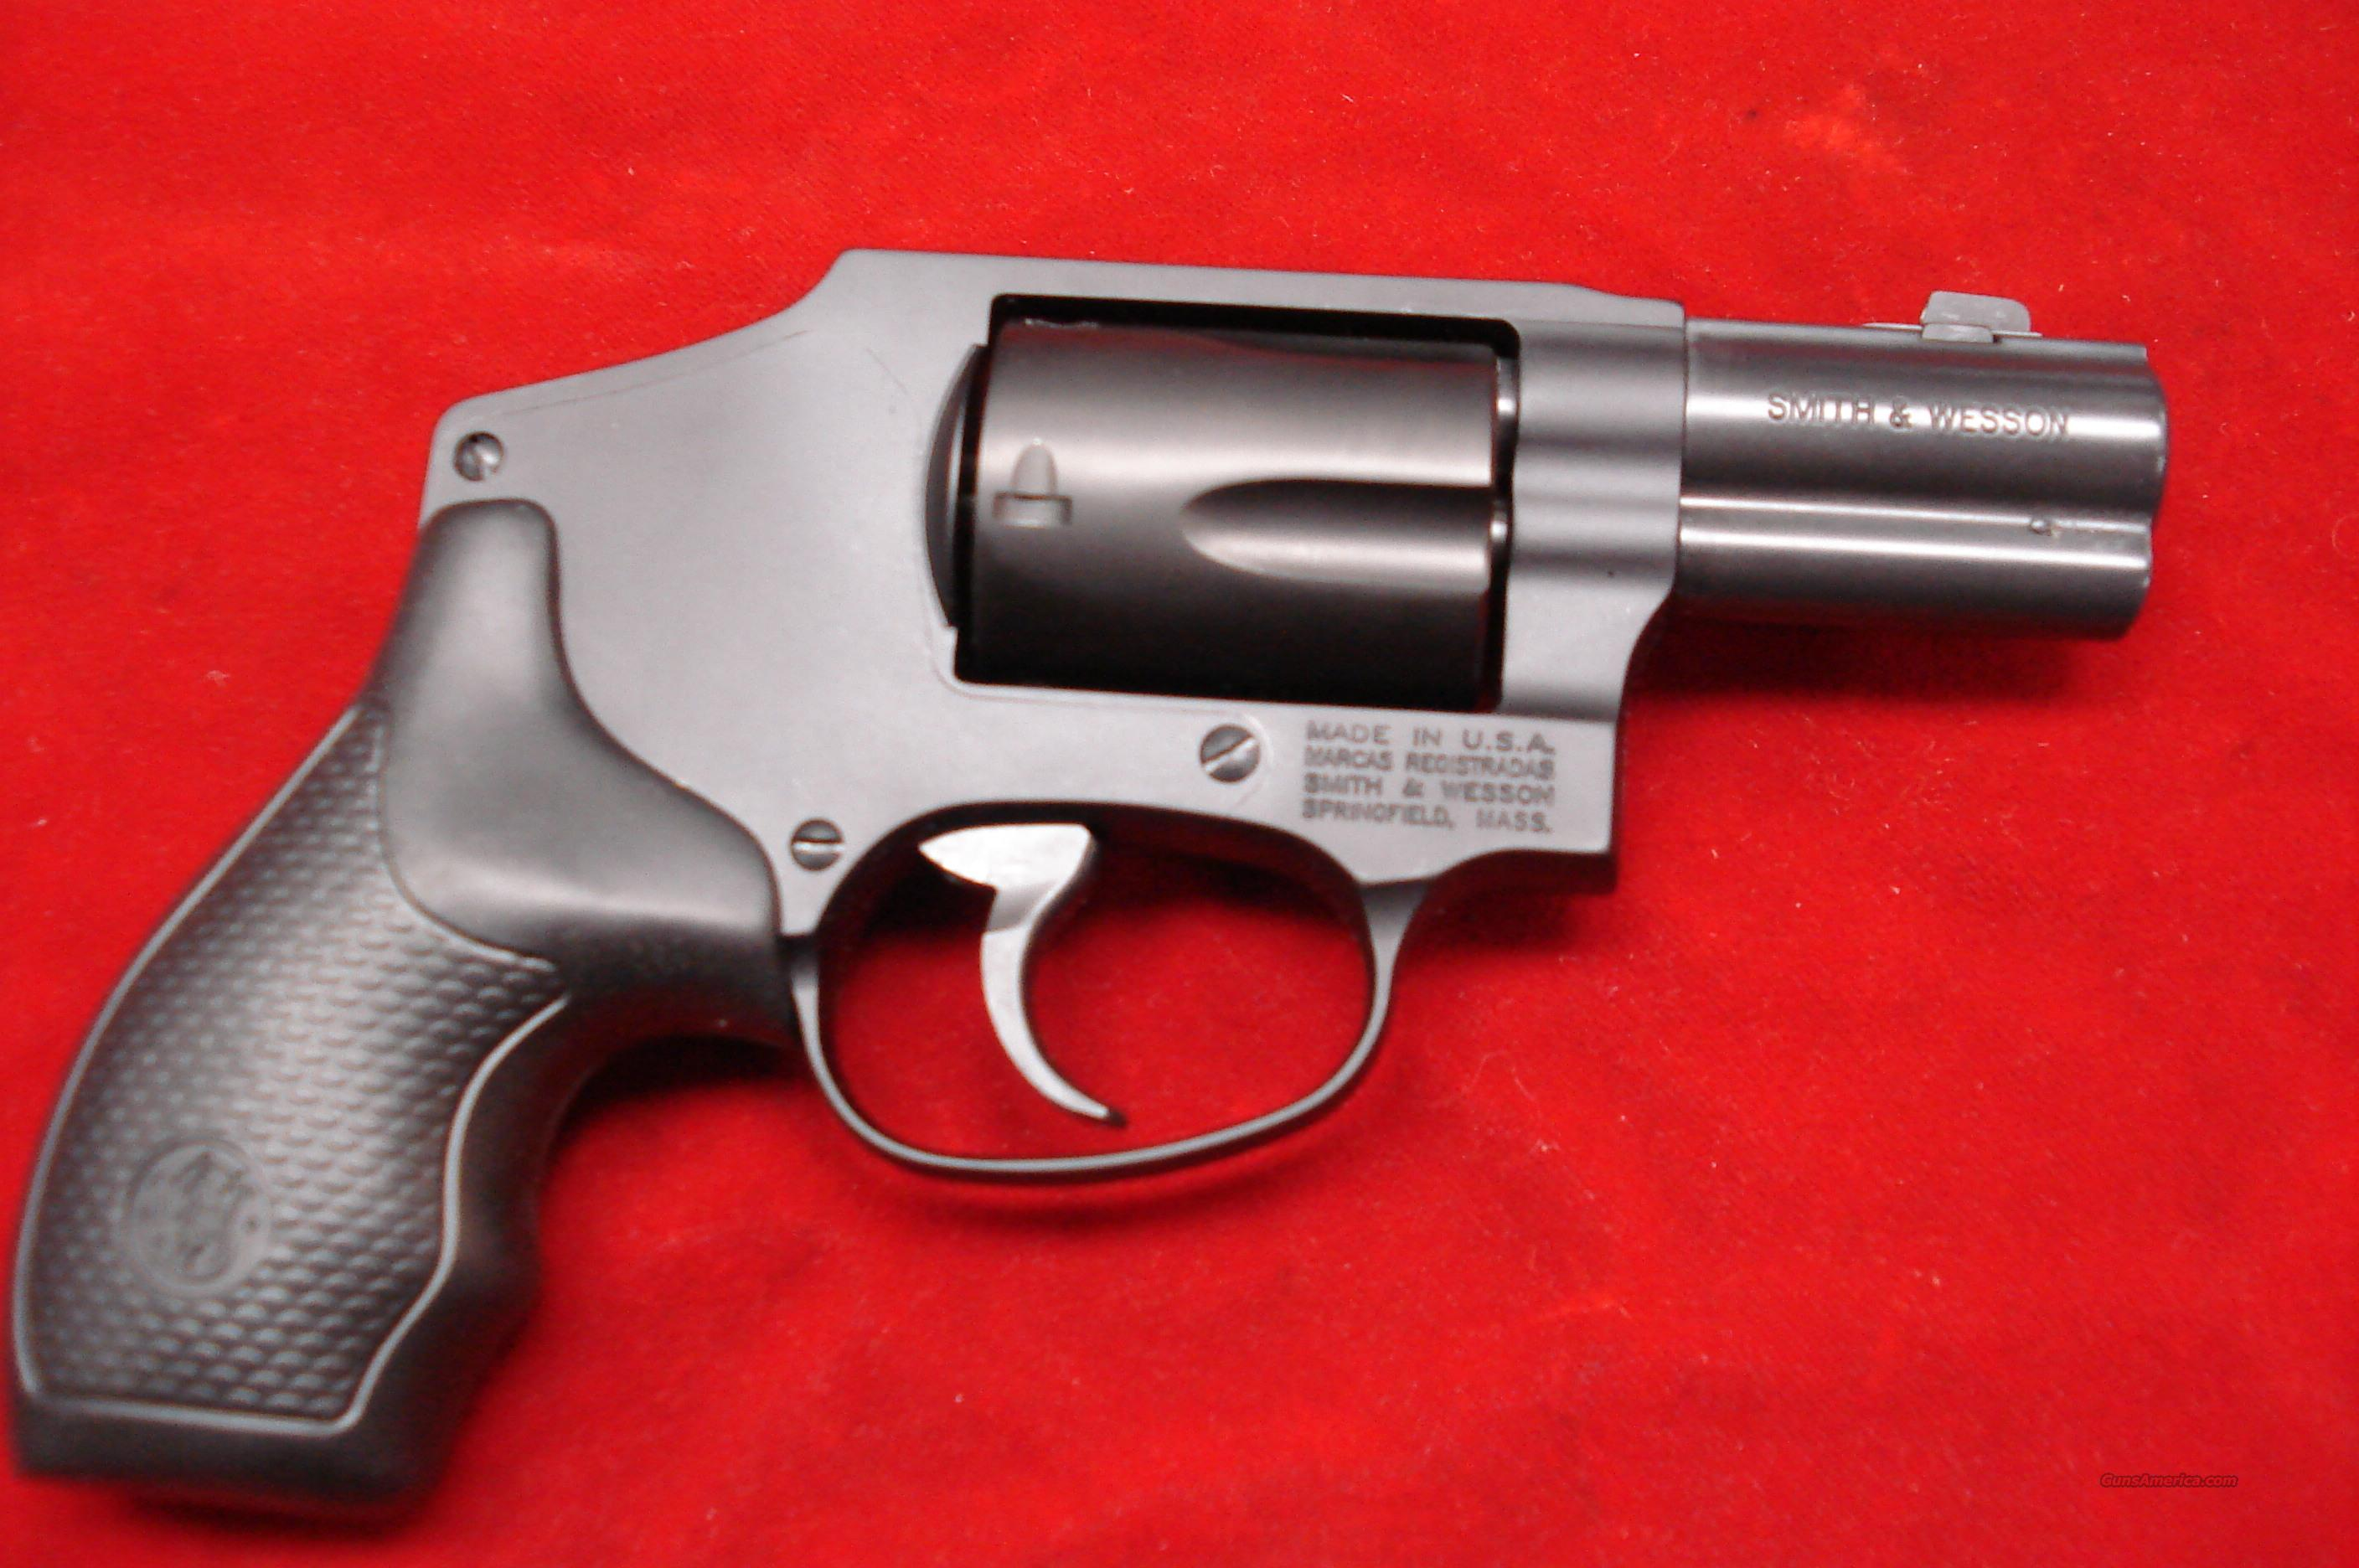 SMITH AND WESSON MODEL 642 POWER PORT PRO SERIES W/NIGHT SIGHTS NEW   Guns > Pistols > Smith & Wesson Revolvers > Pocket Pistols